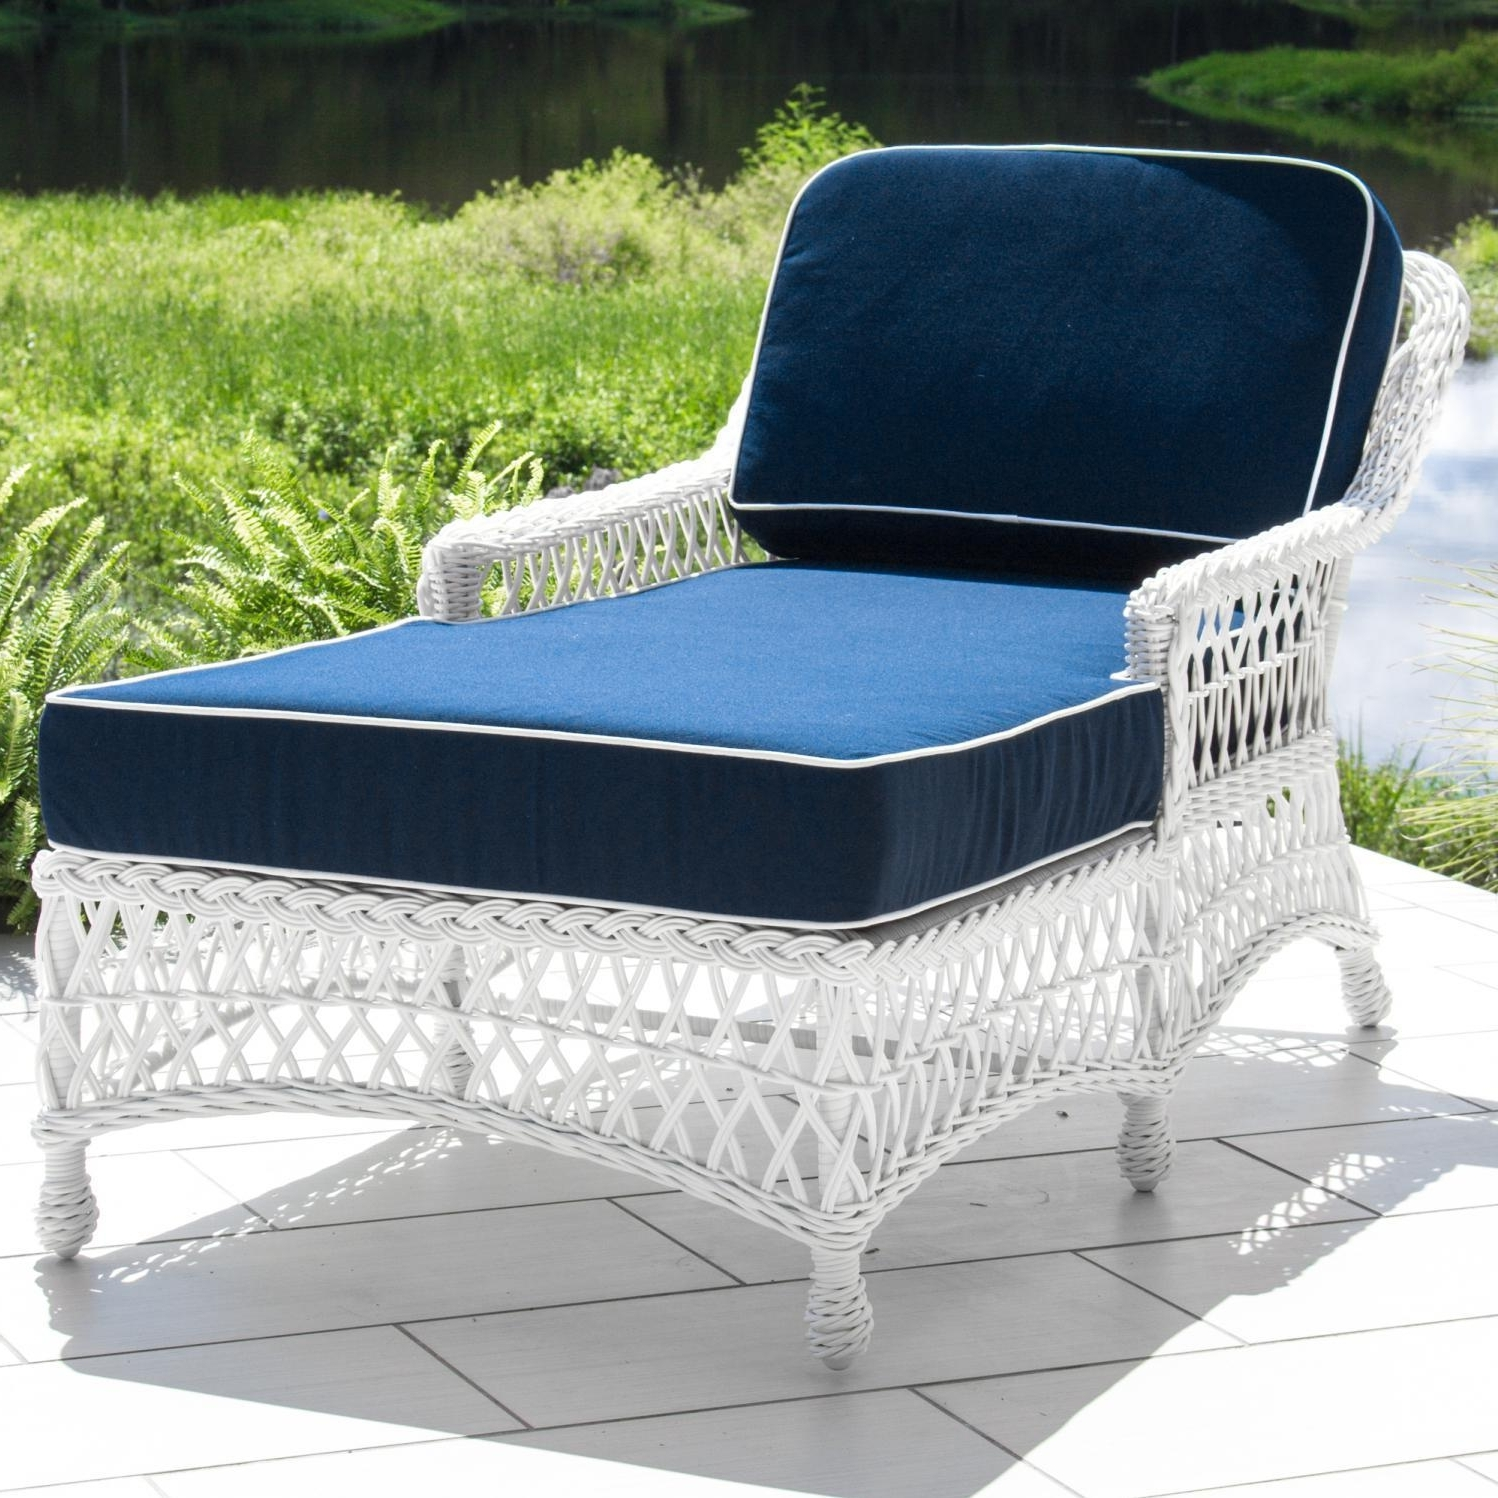 Newest Outdoor Wicker Chaise Lounges Pertaining To Outdoor : Affordable Chaise Lounges Chaise Lounge Patio Furniture (View 4 of 15)